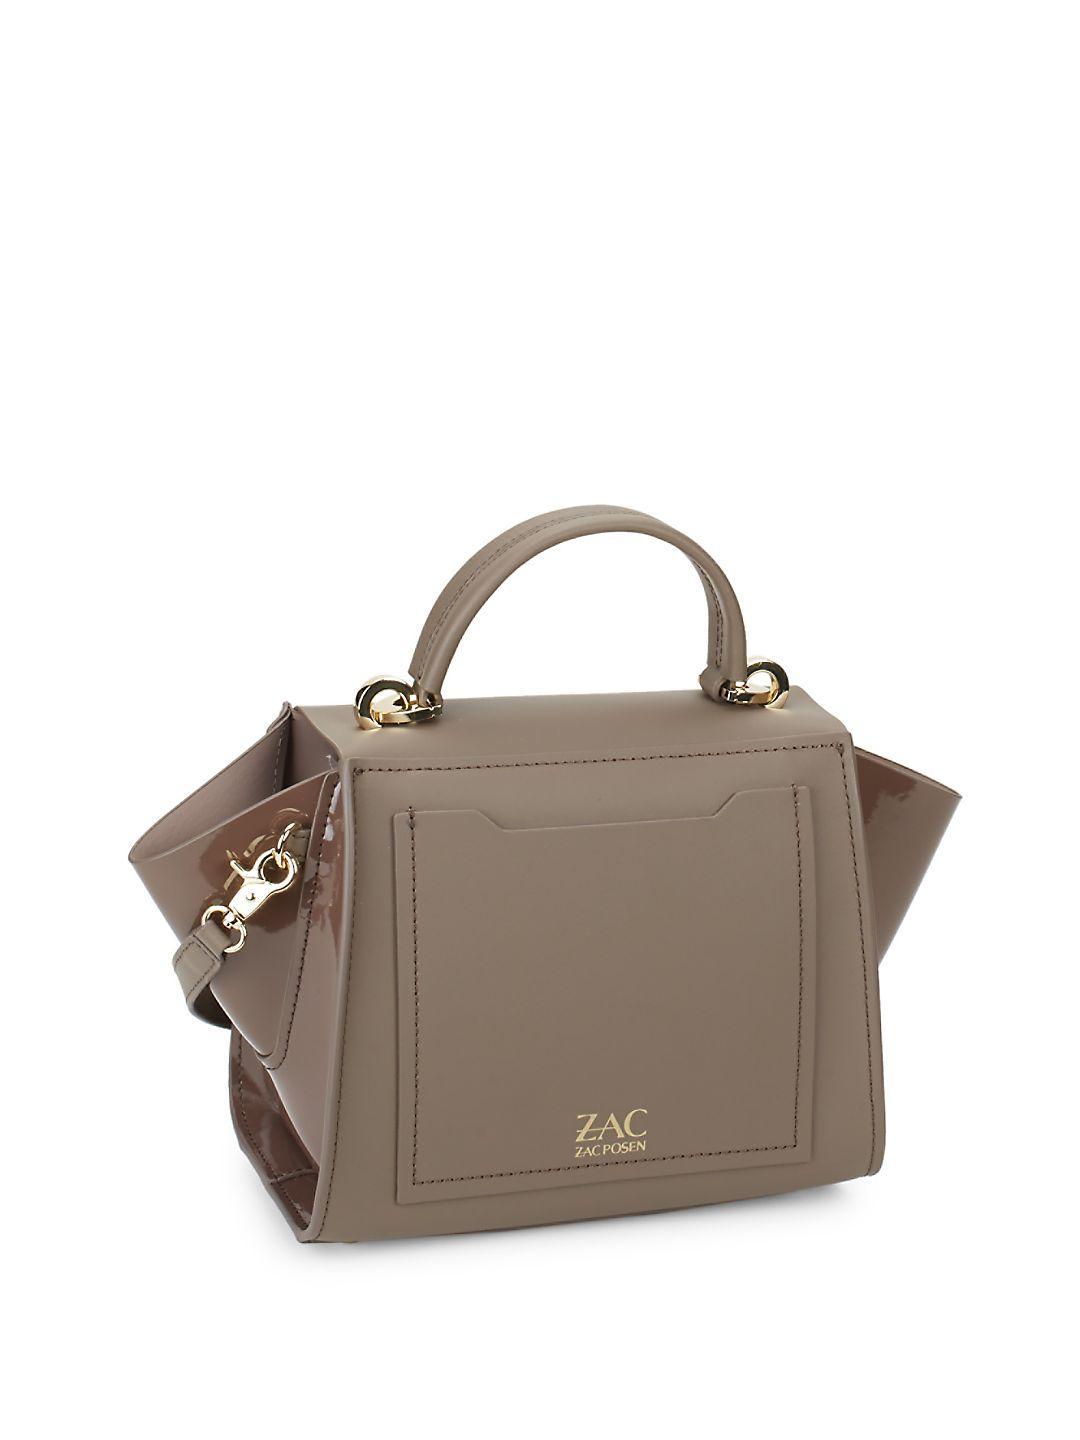 Zac Zac Posen Eartha Iconic Leather Satchel In Brown Lyst